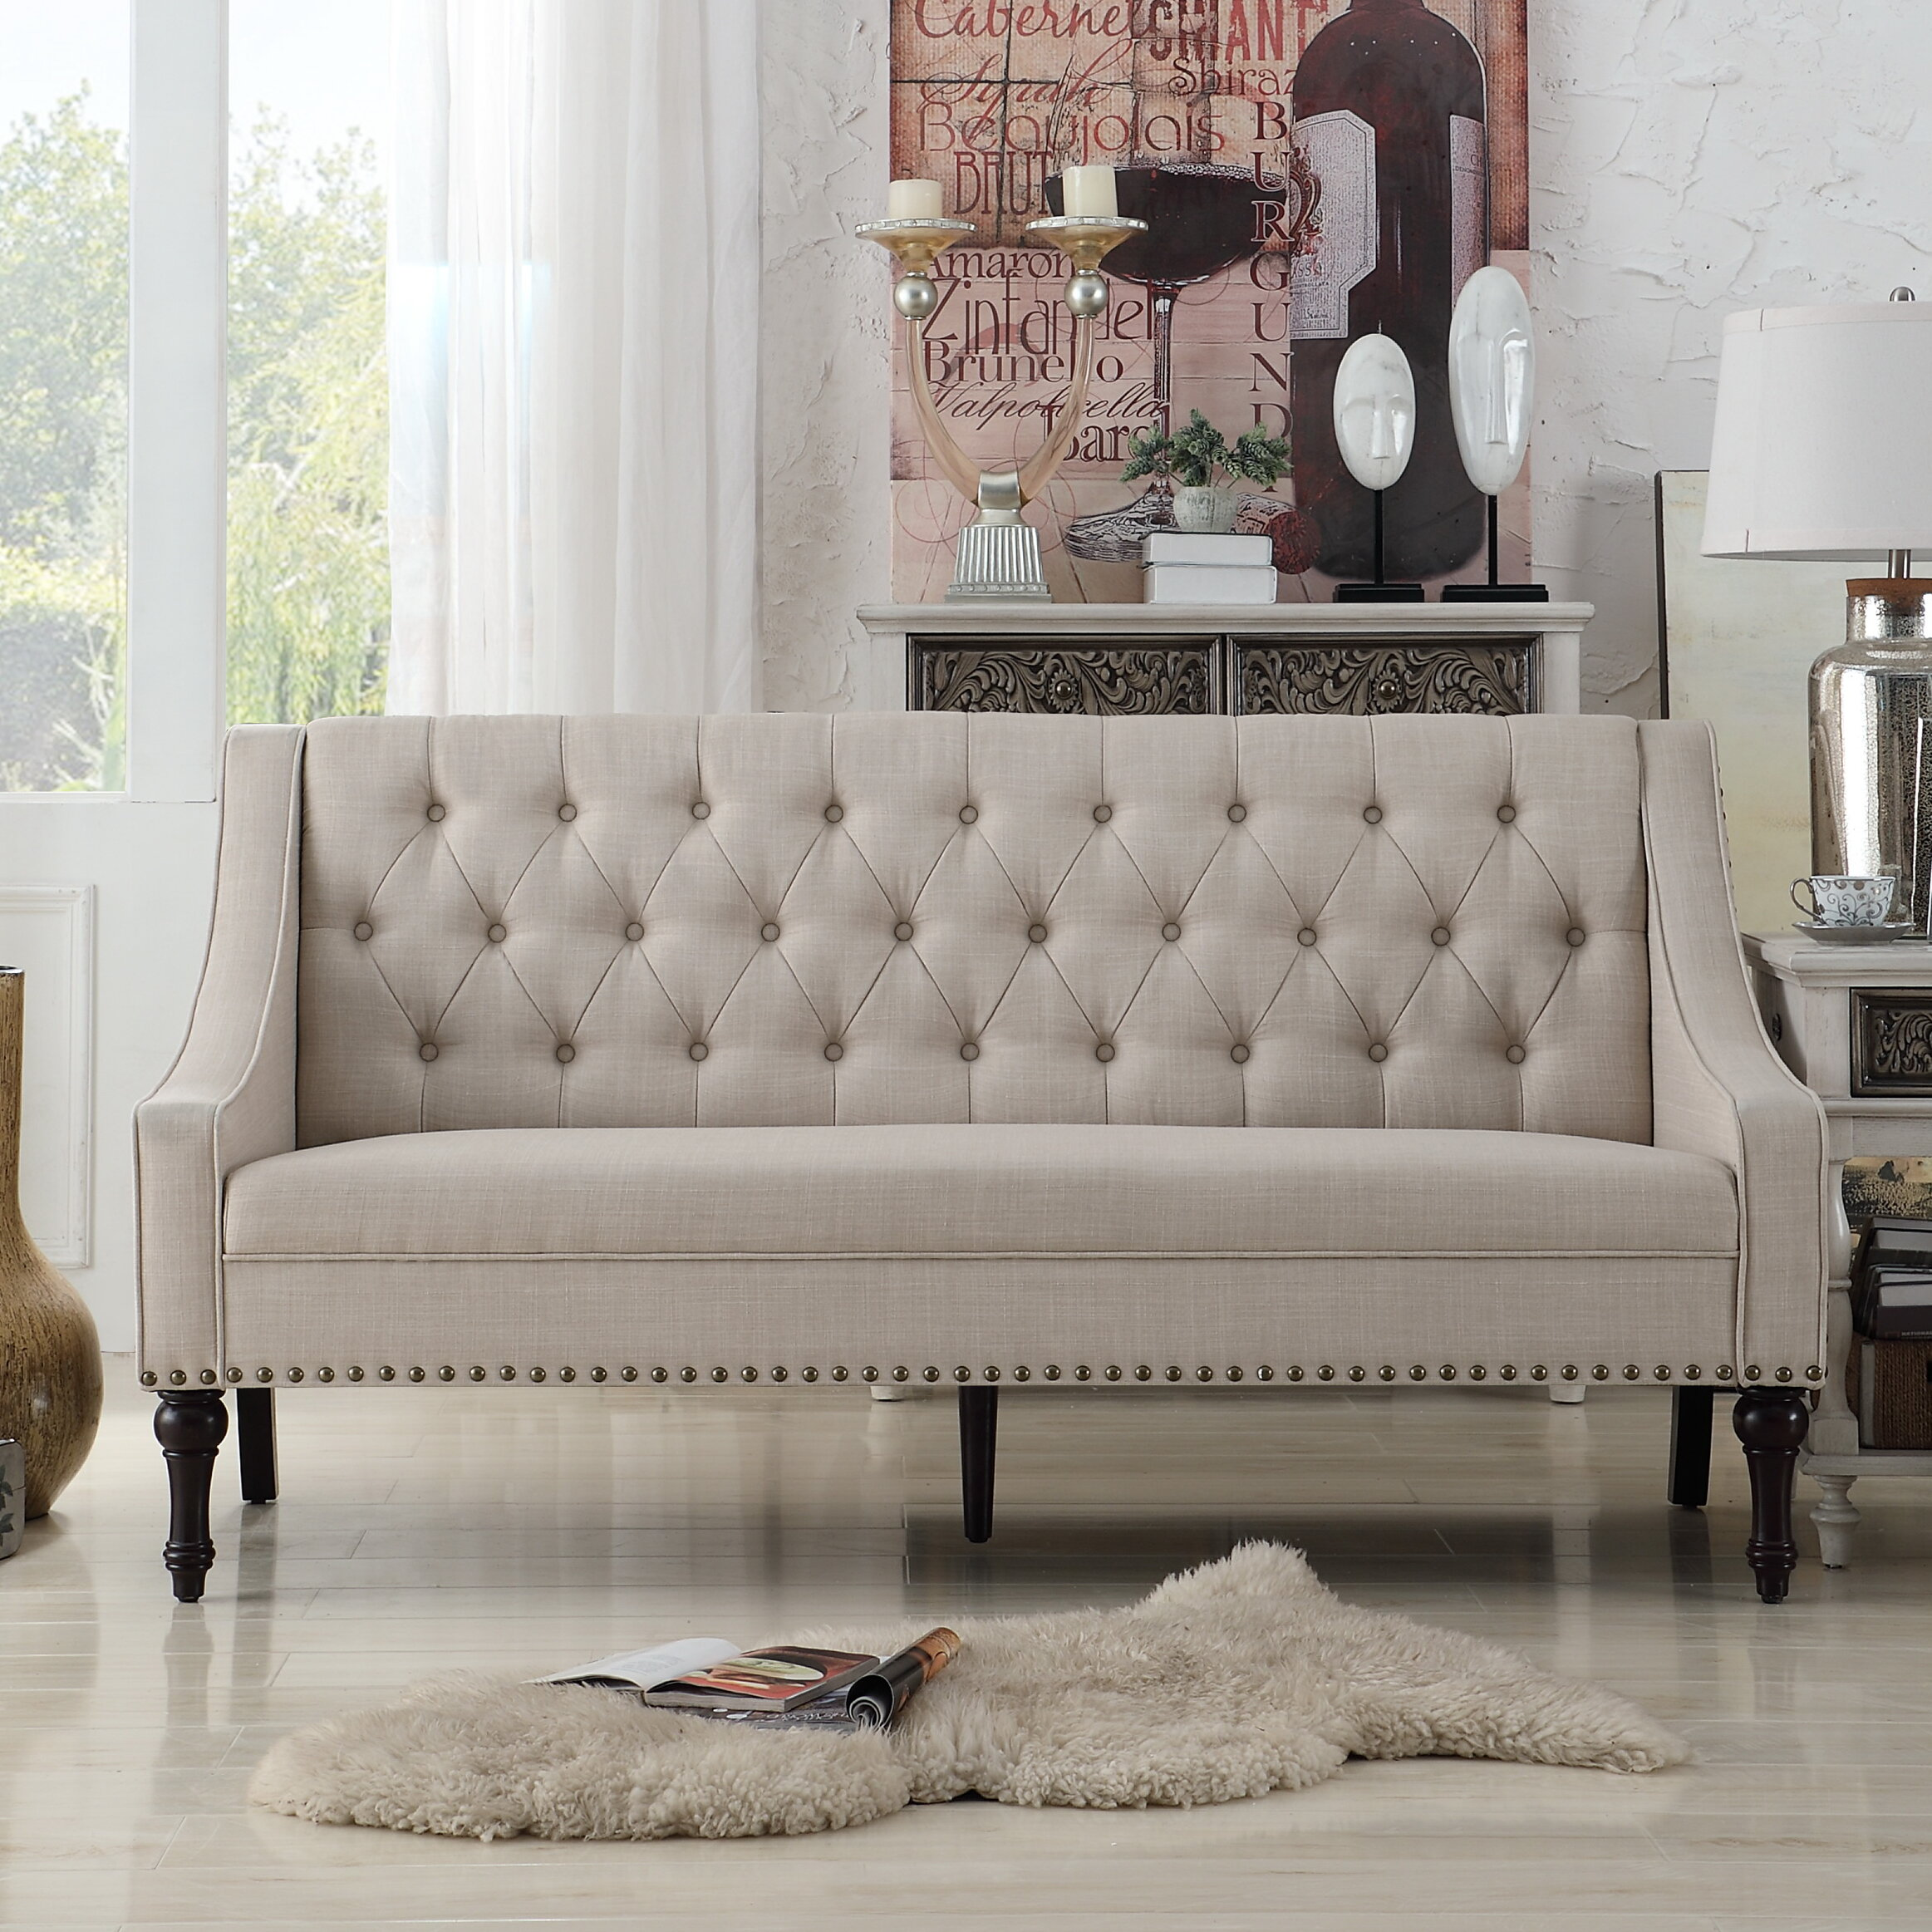 Delicieux Christiansburg Tufted Sofa